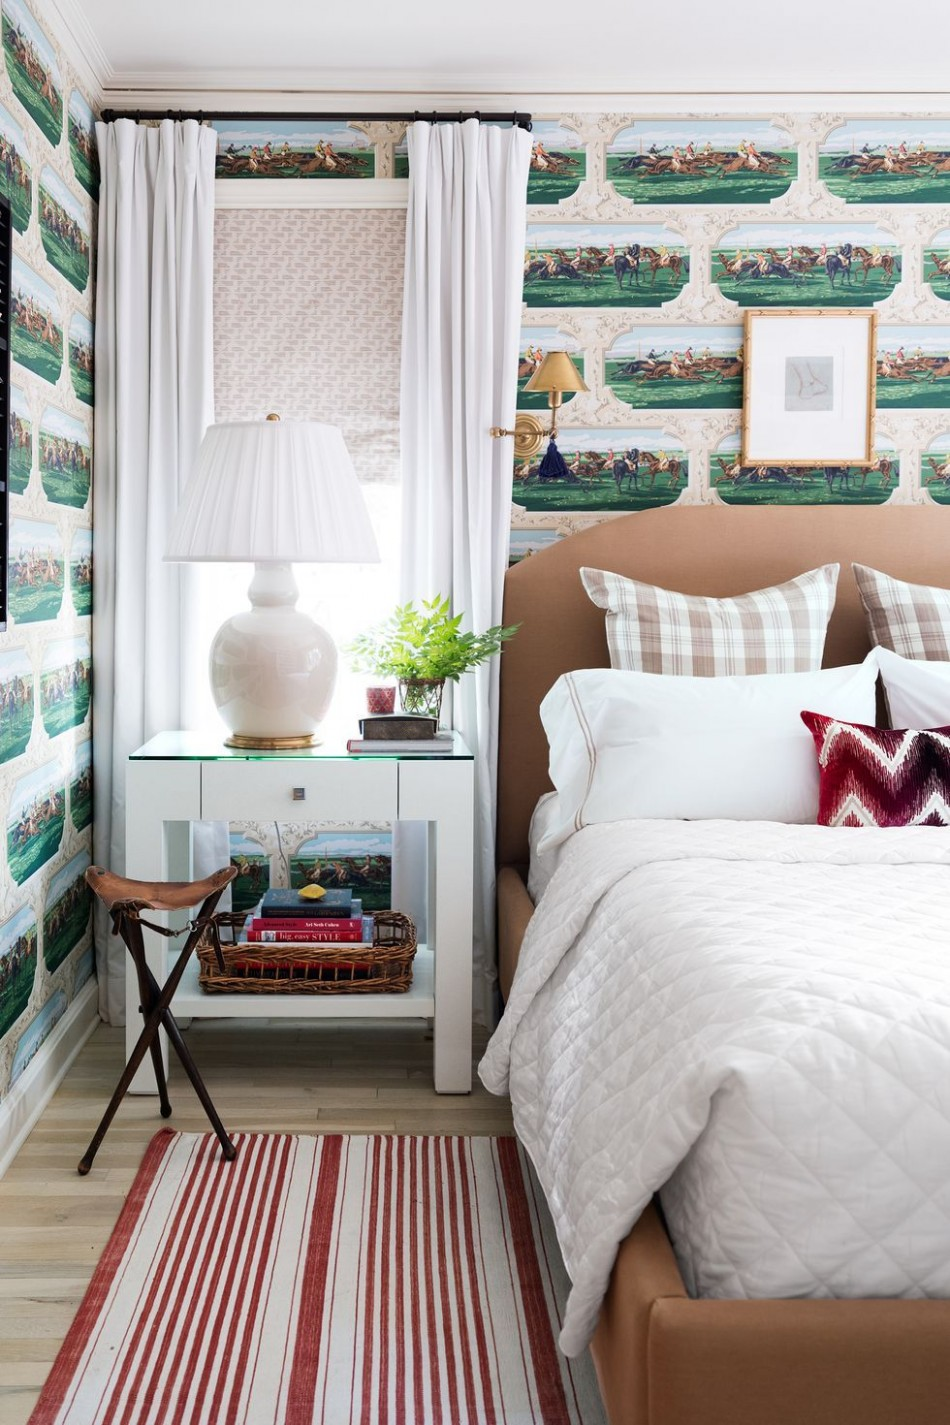 10 Small Bedroom Design Ideas - How to Decorate a Small Bedroom - Bedroom Ideas For Small Rooms